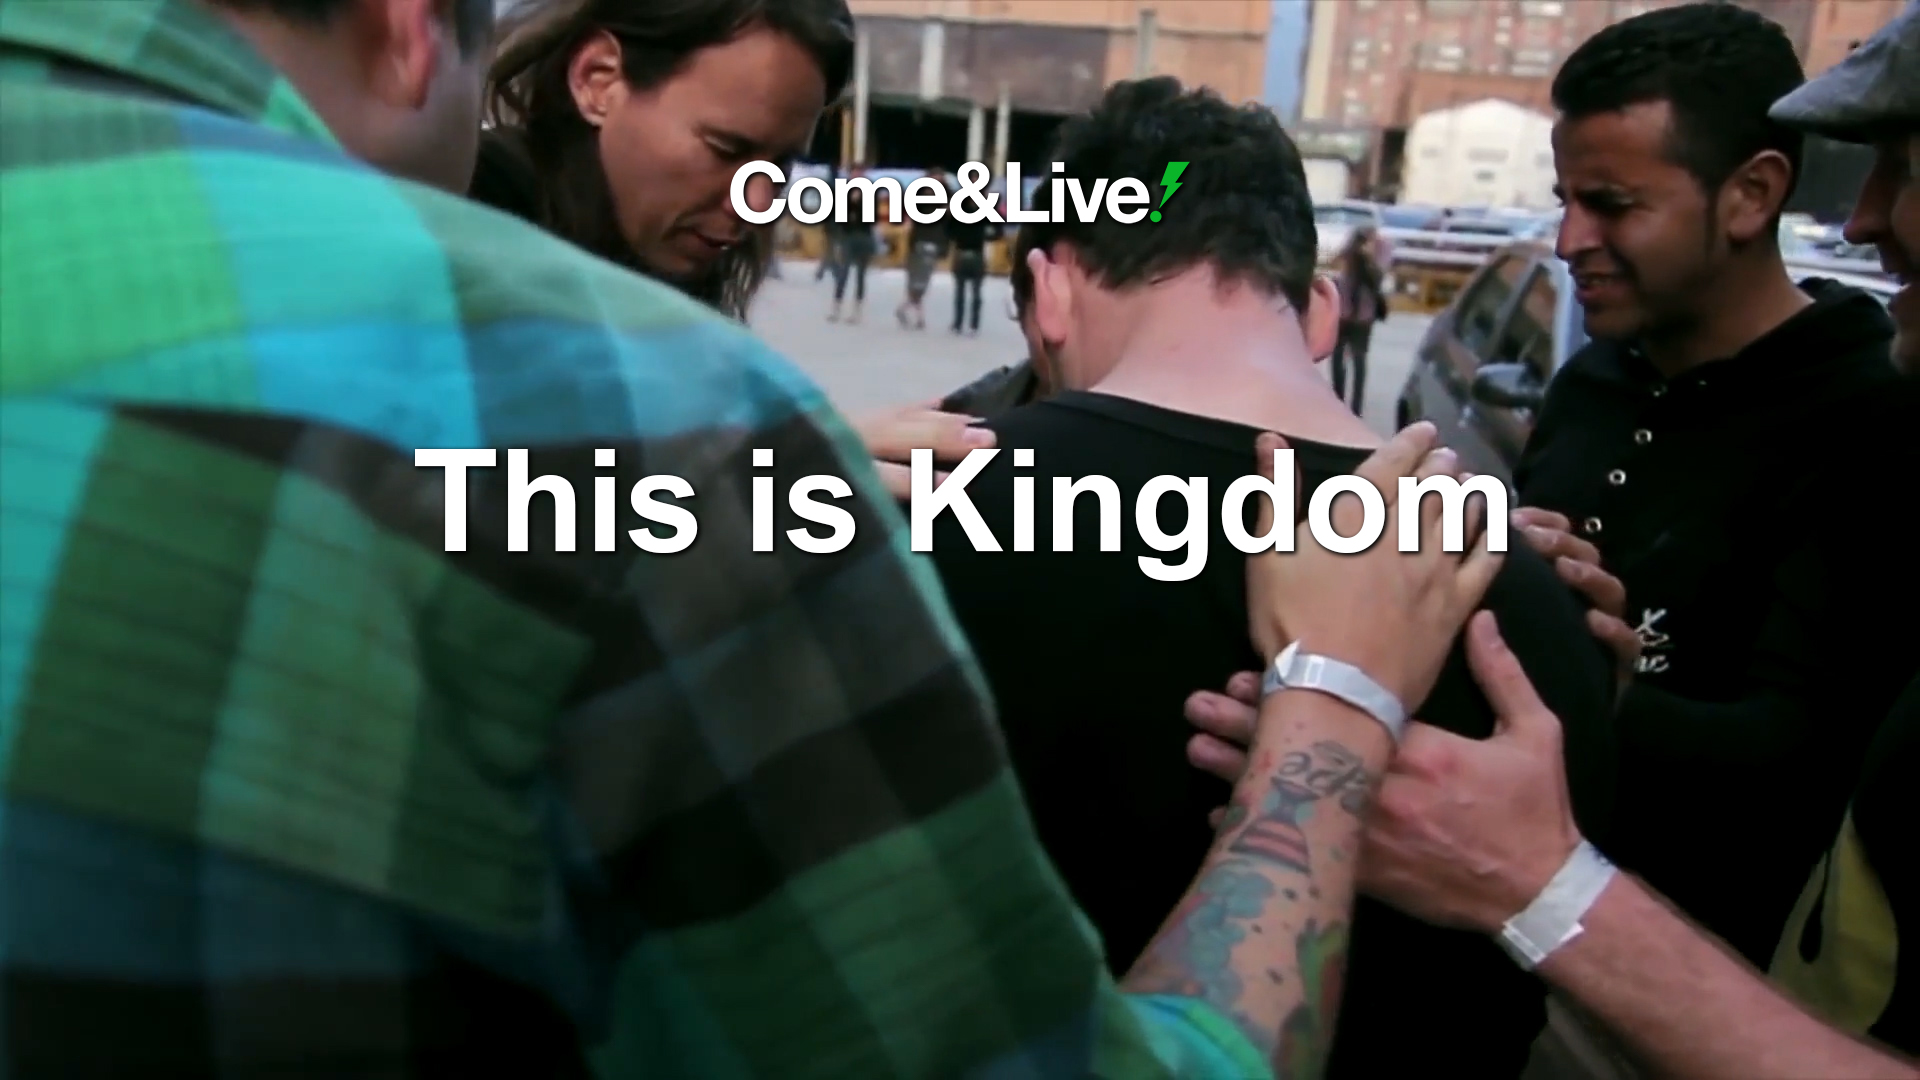 Colombia - This is Kingdom Video Showing Slide